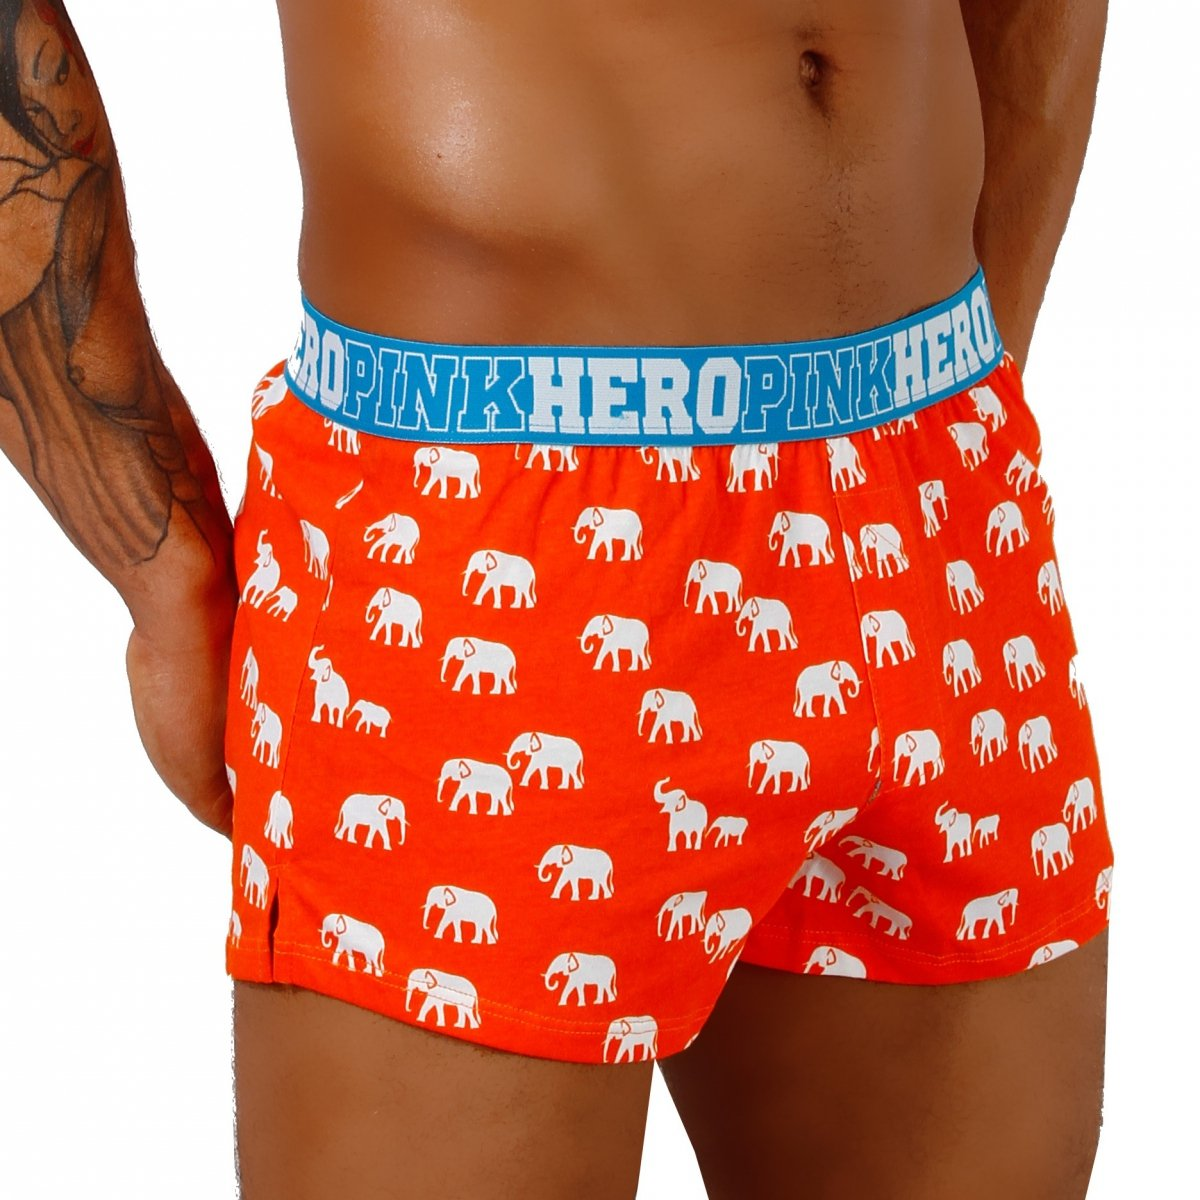 Royalunderwear - men`s underwear - PINK HERO Orange ... - photo#47